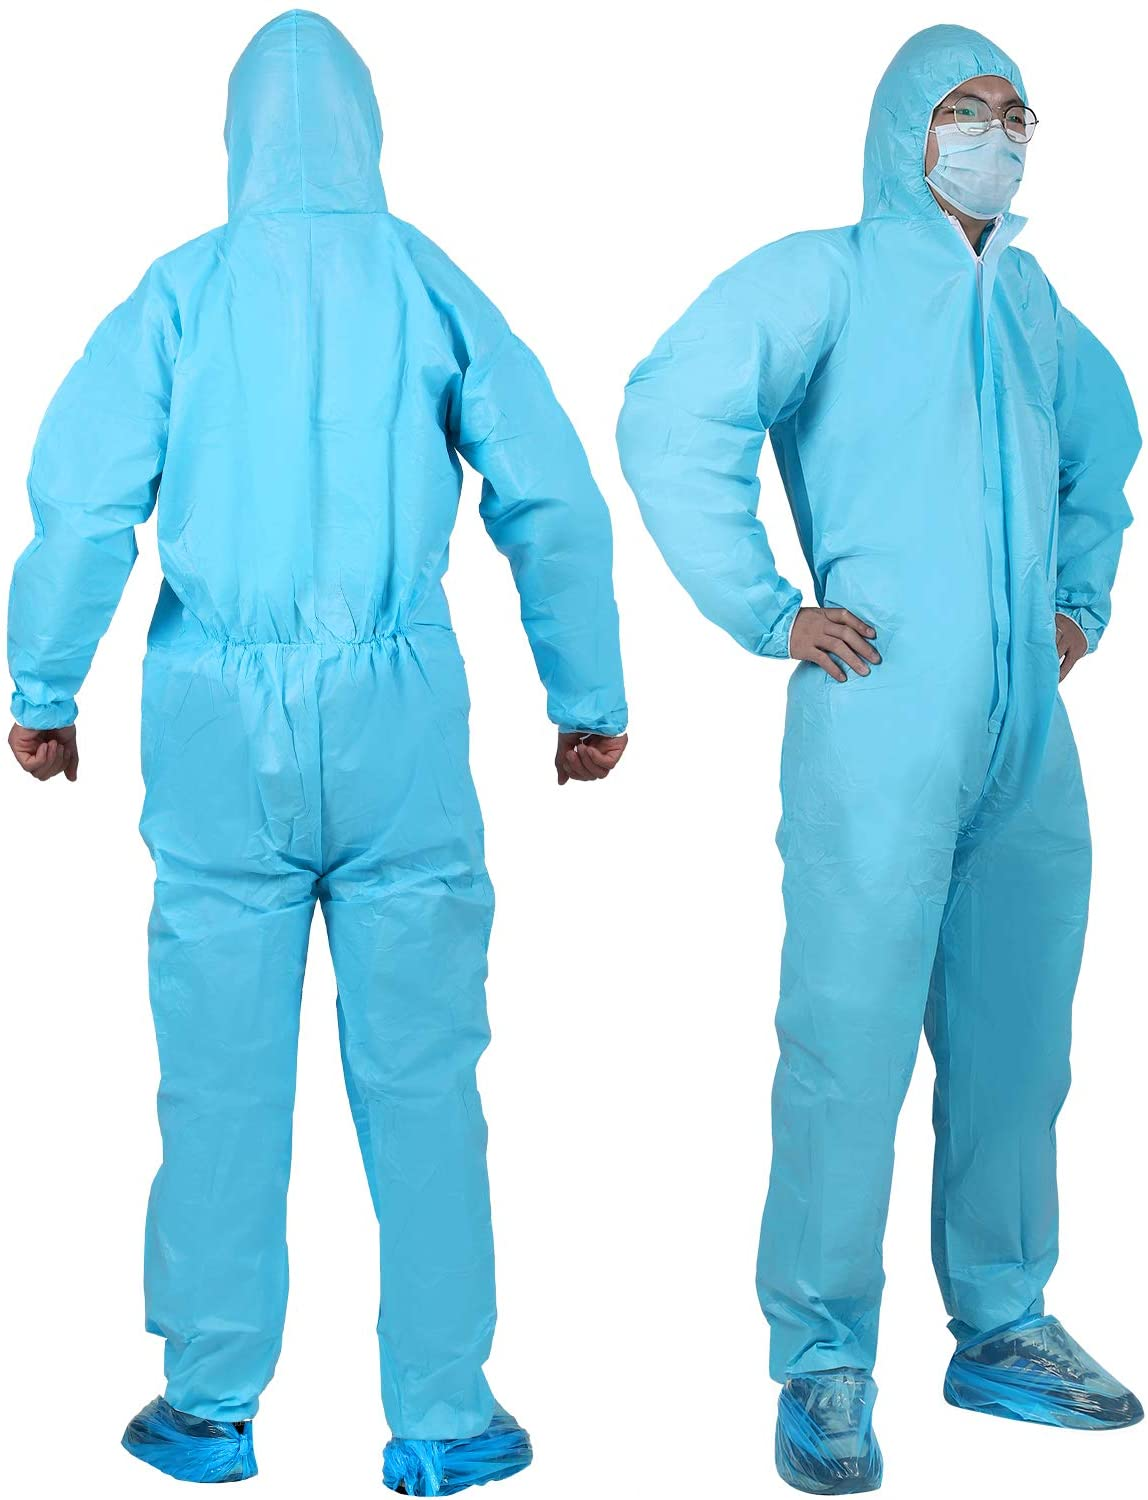 YIBER Disposable Protective Coverall Suit, Made of SF Material, Excellent air permeability and water repellency - 5 PCS/PACK (XXL, Blue)